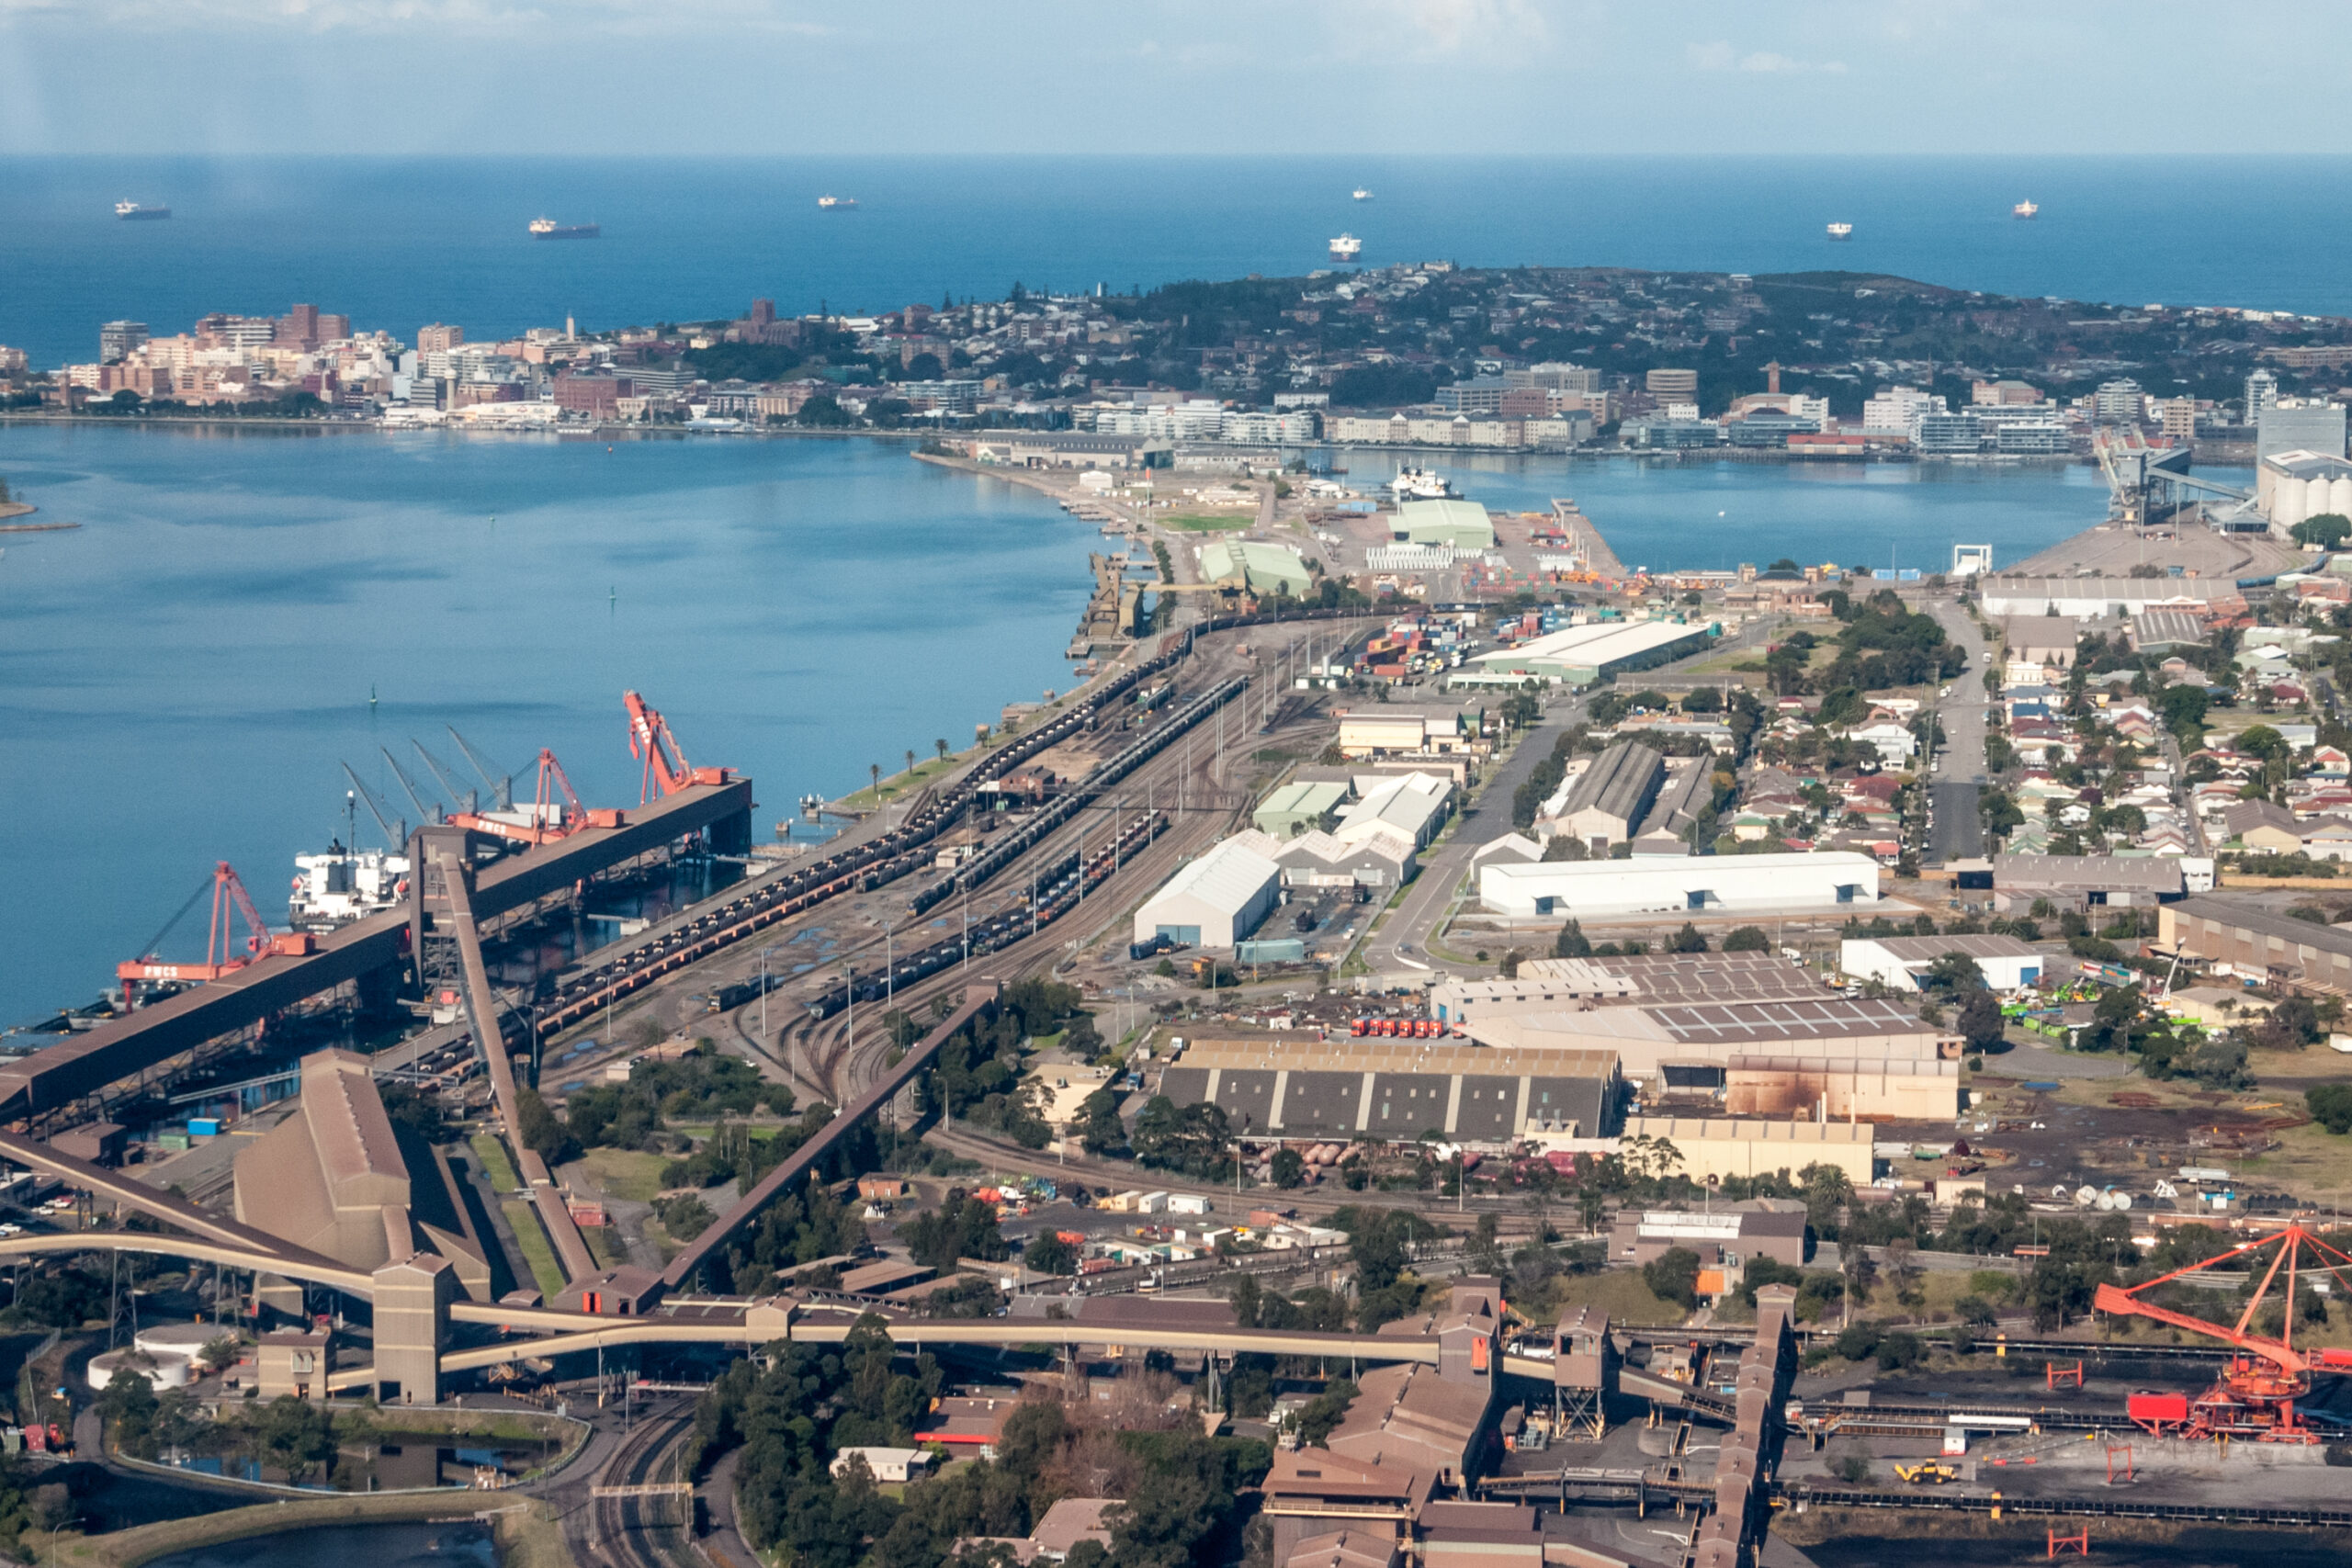 Newcastle port and coal loading facilities at Carrington. Newcastle is the largest coal export port in the world loading freights with black coal.